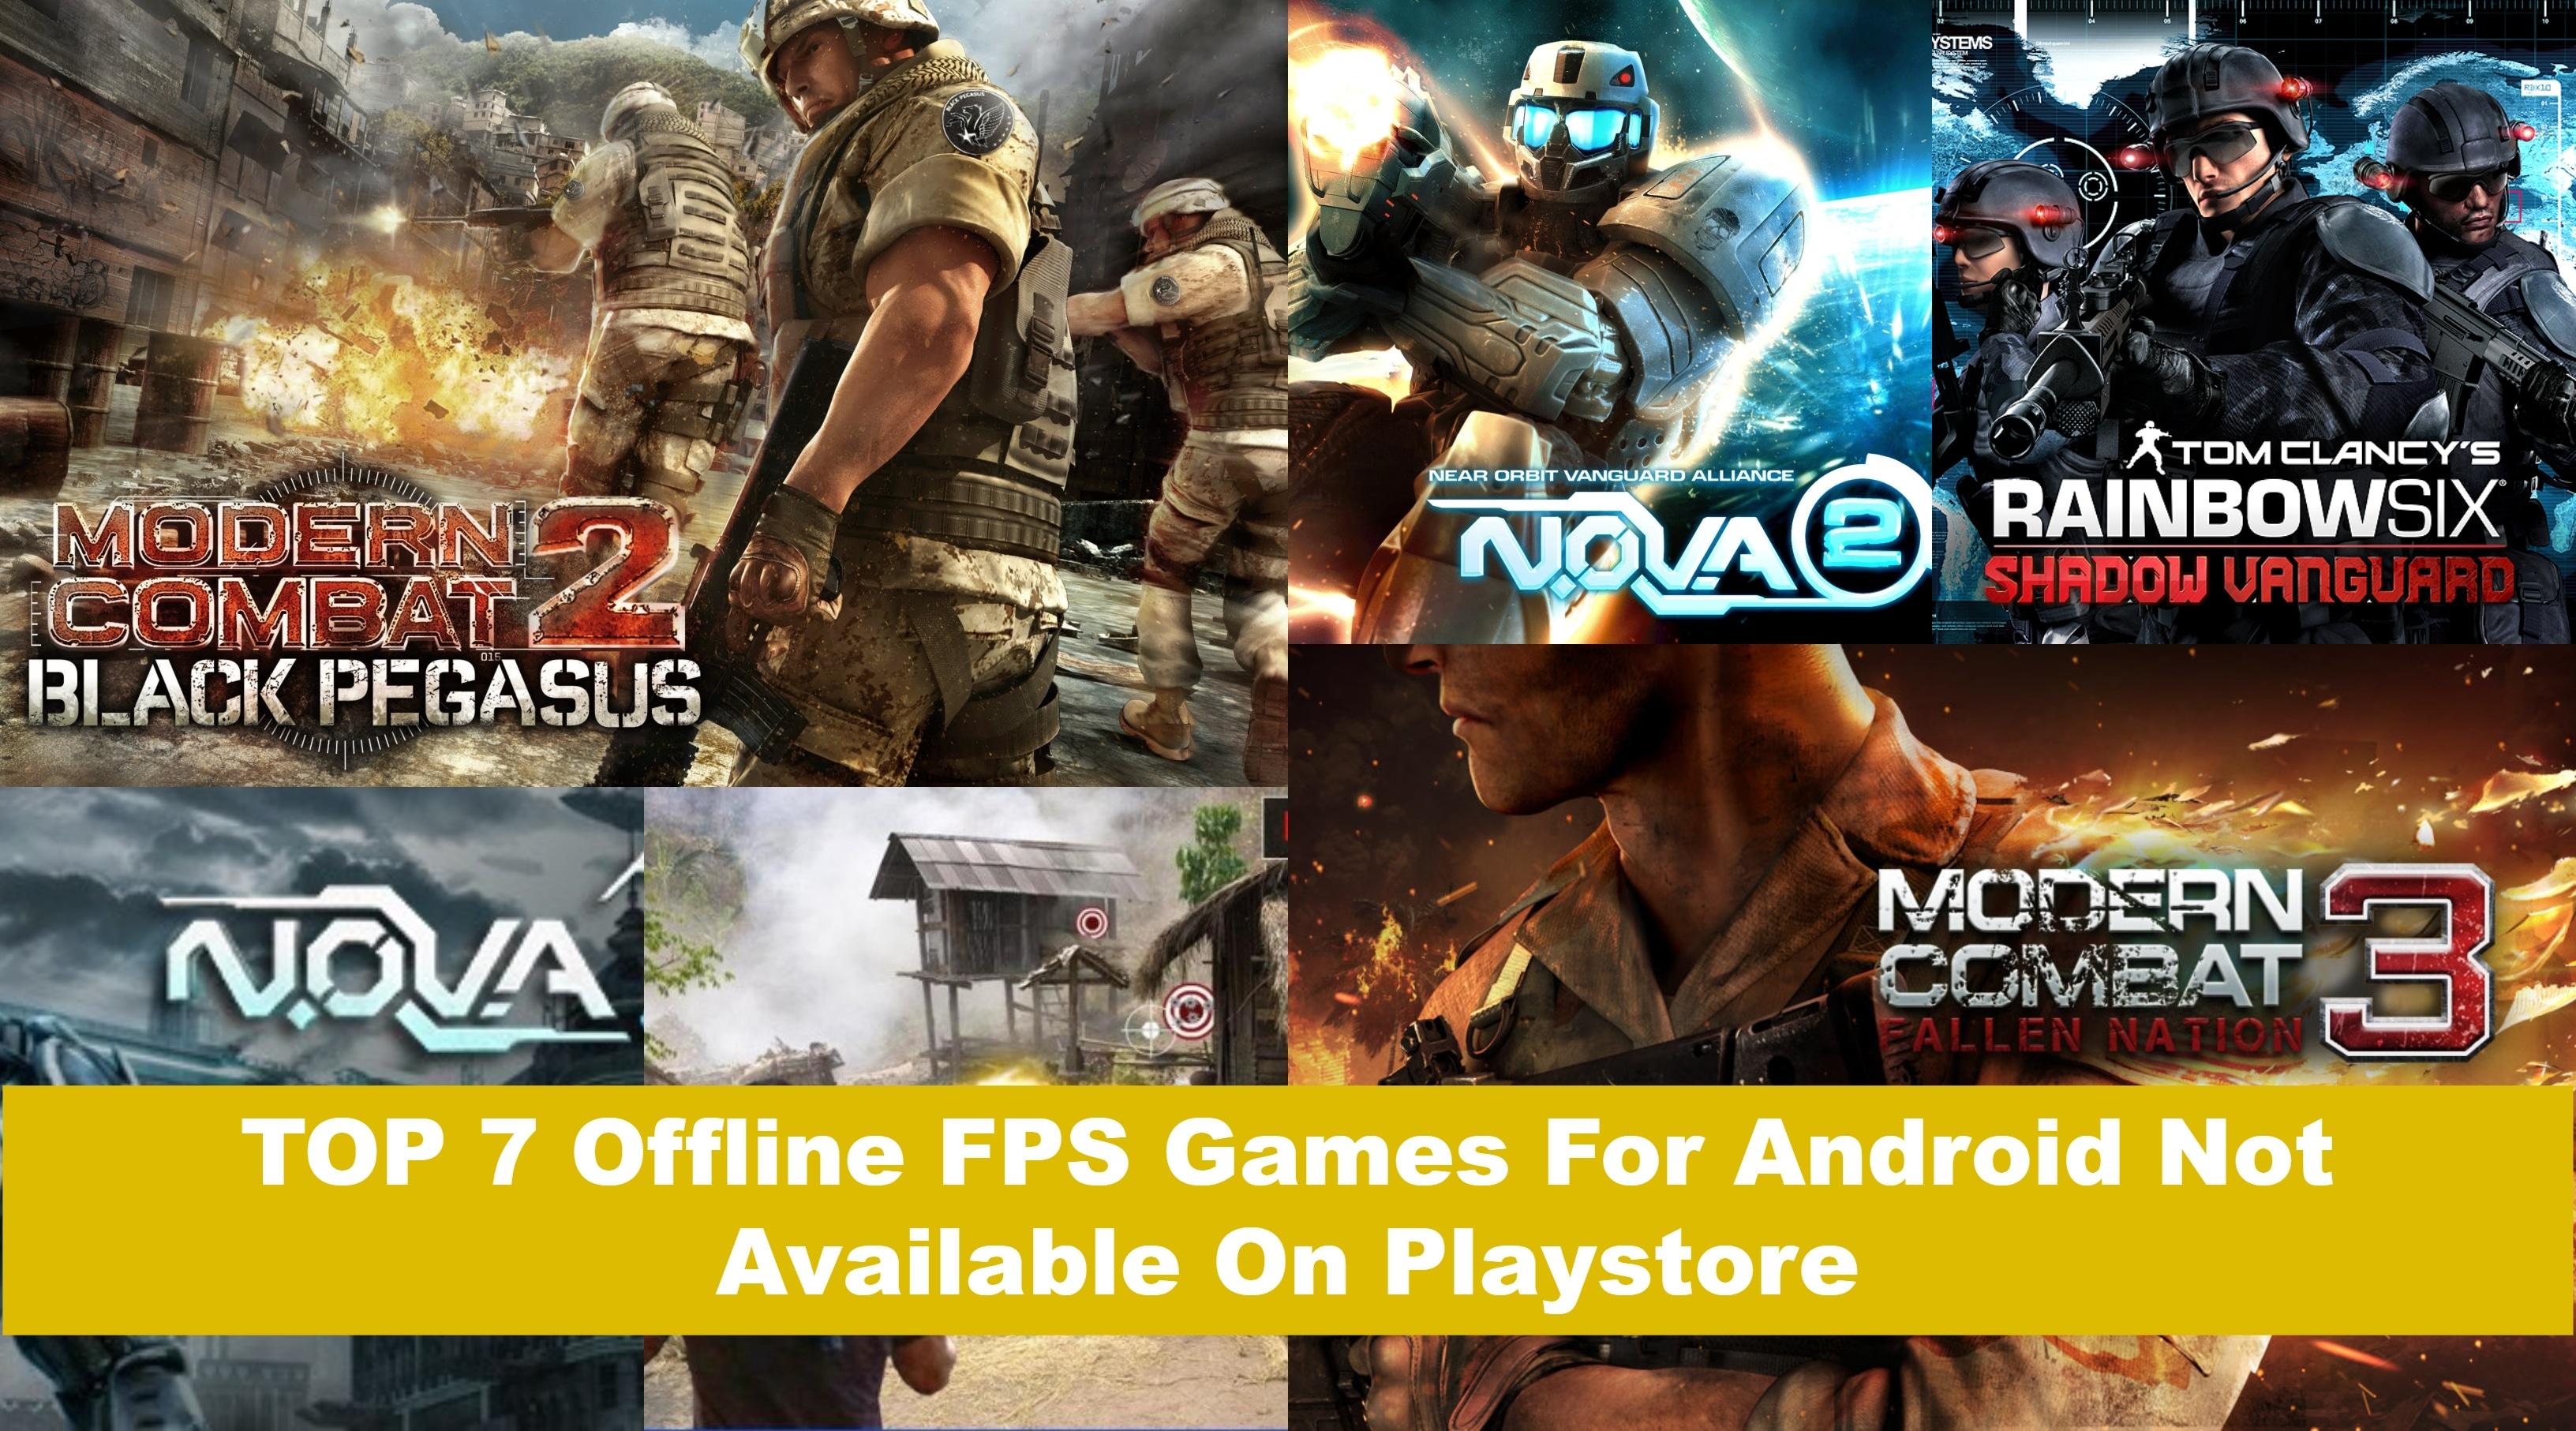 TOP 7 Offline FPS Games For Android Not Available On Playstore